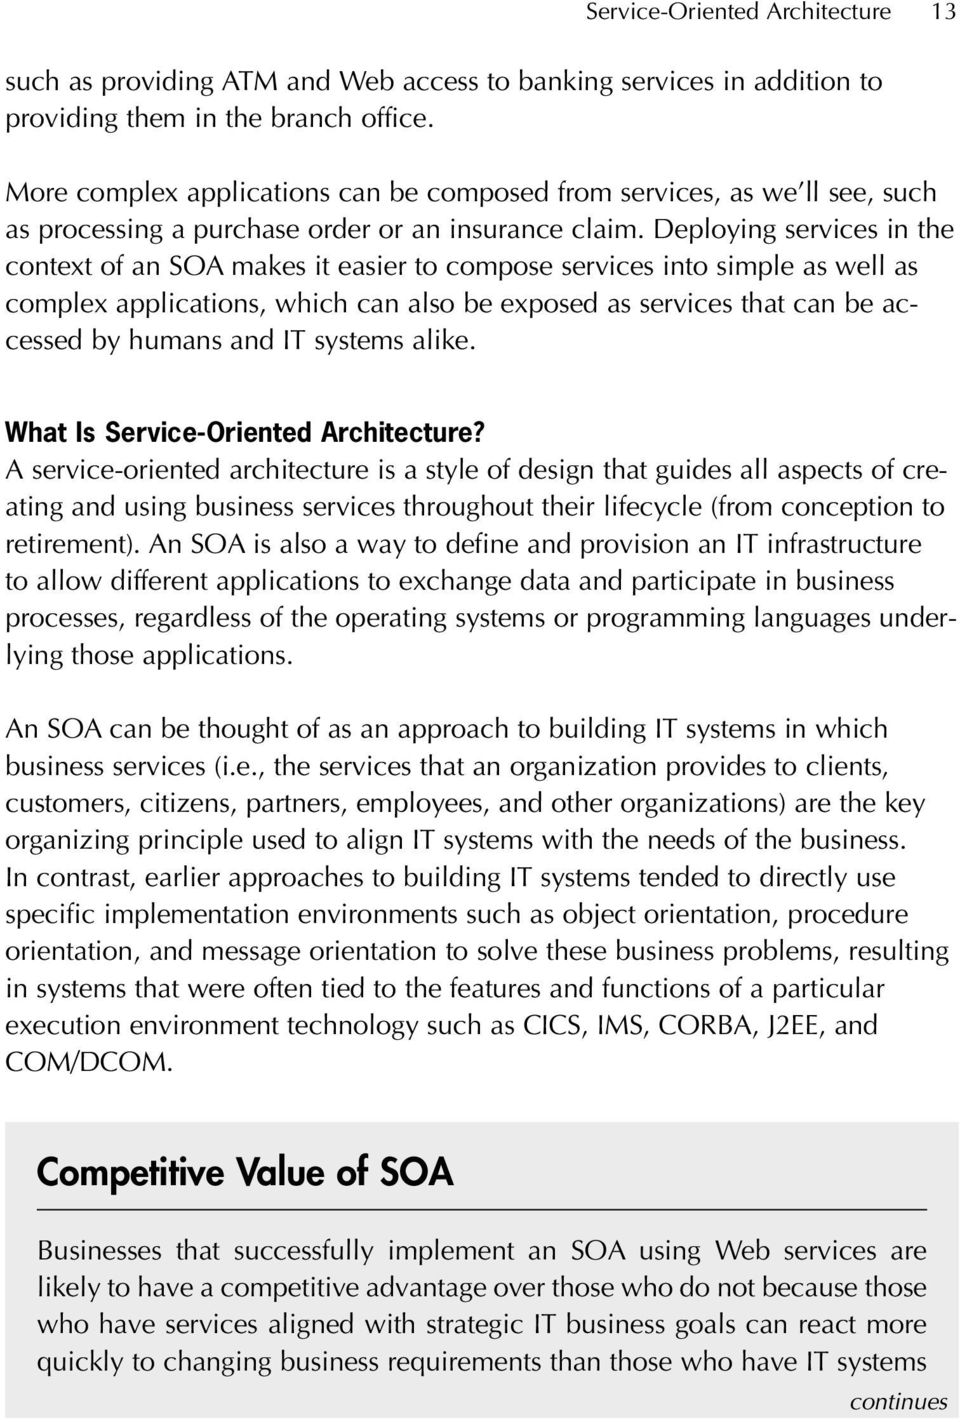 Deploying services in the context of an SOA makes it easier to compose services into simple as well as complex applications, which can also be exposed as services that can be accessed by humans and